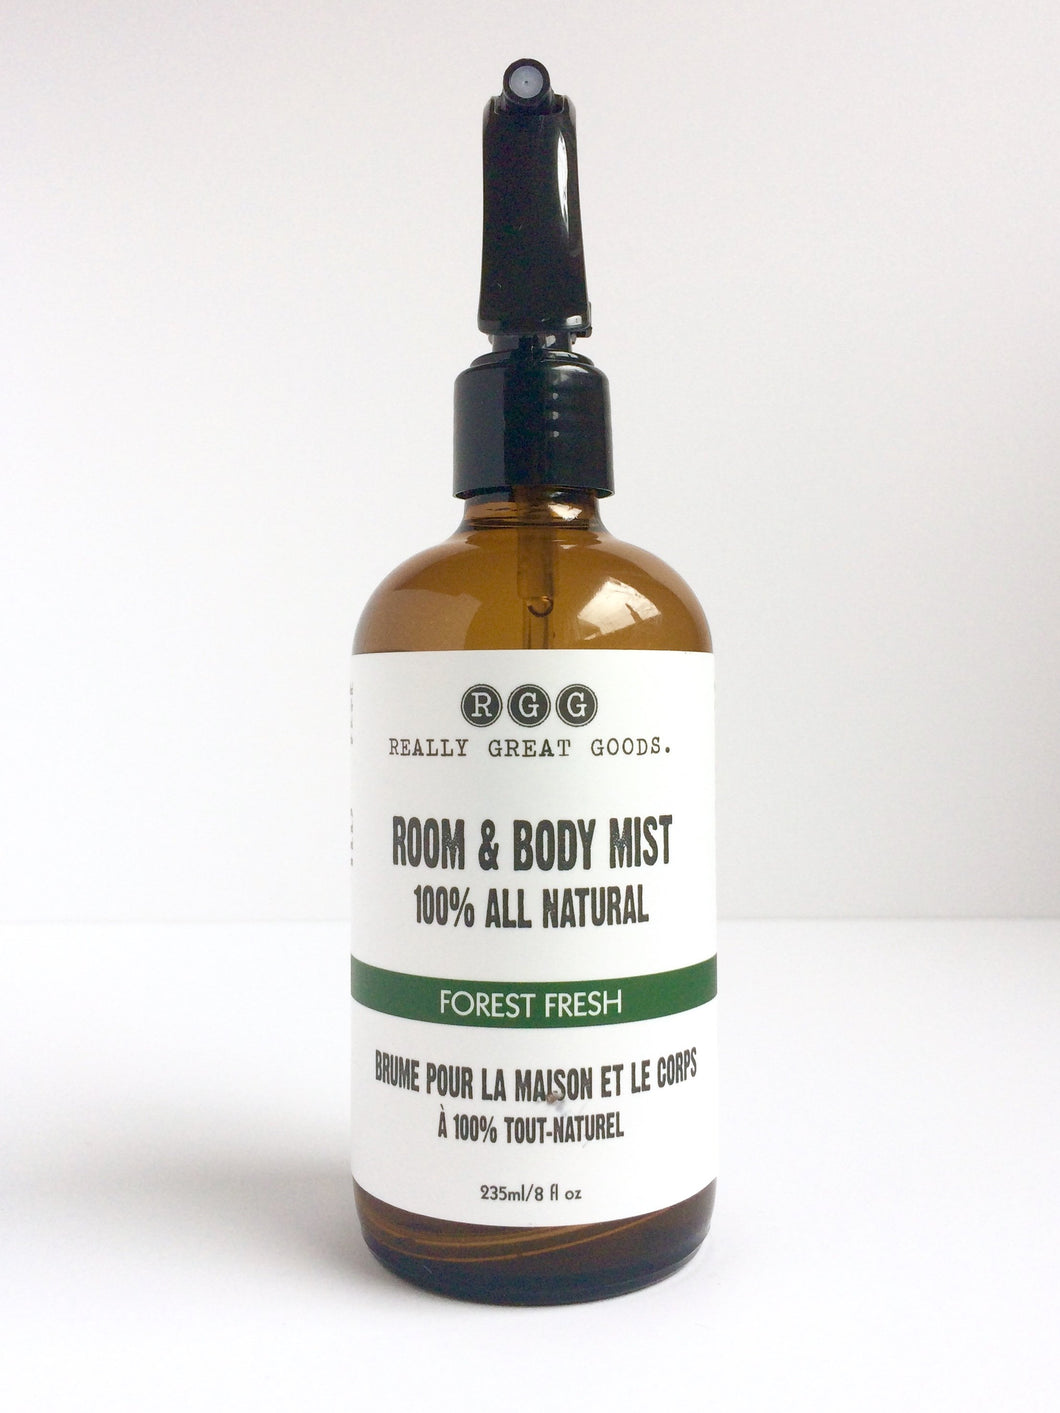 Forest Fresh Organic Room & Body Mists from Really Great Goods.